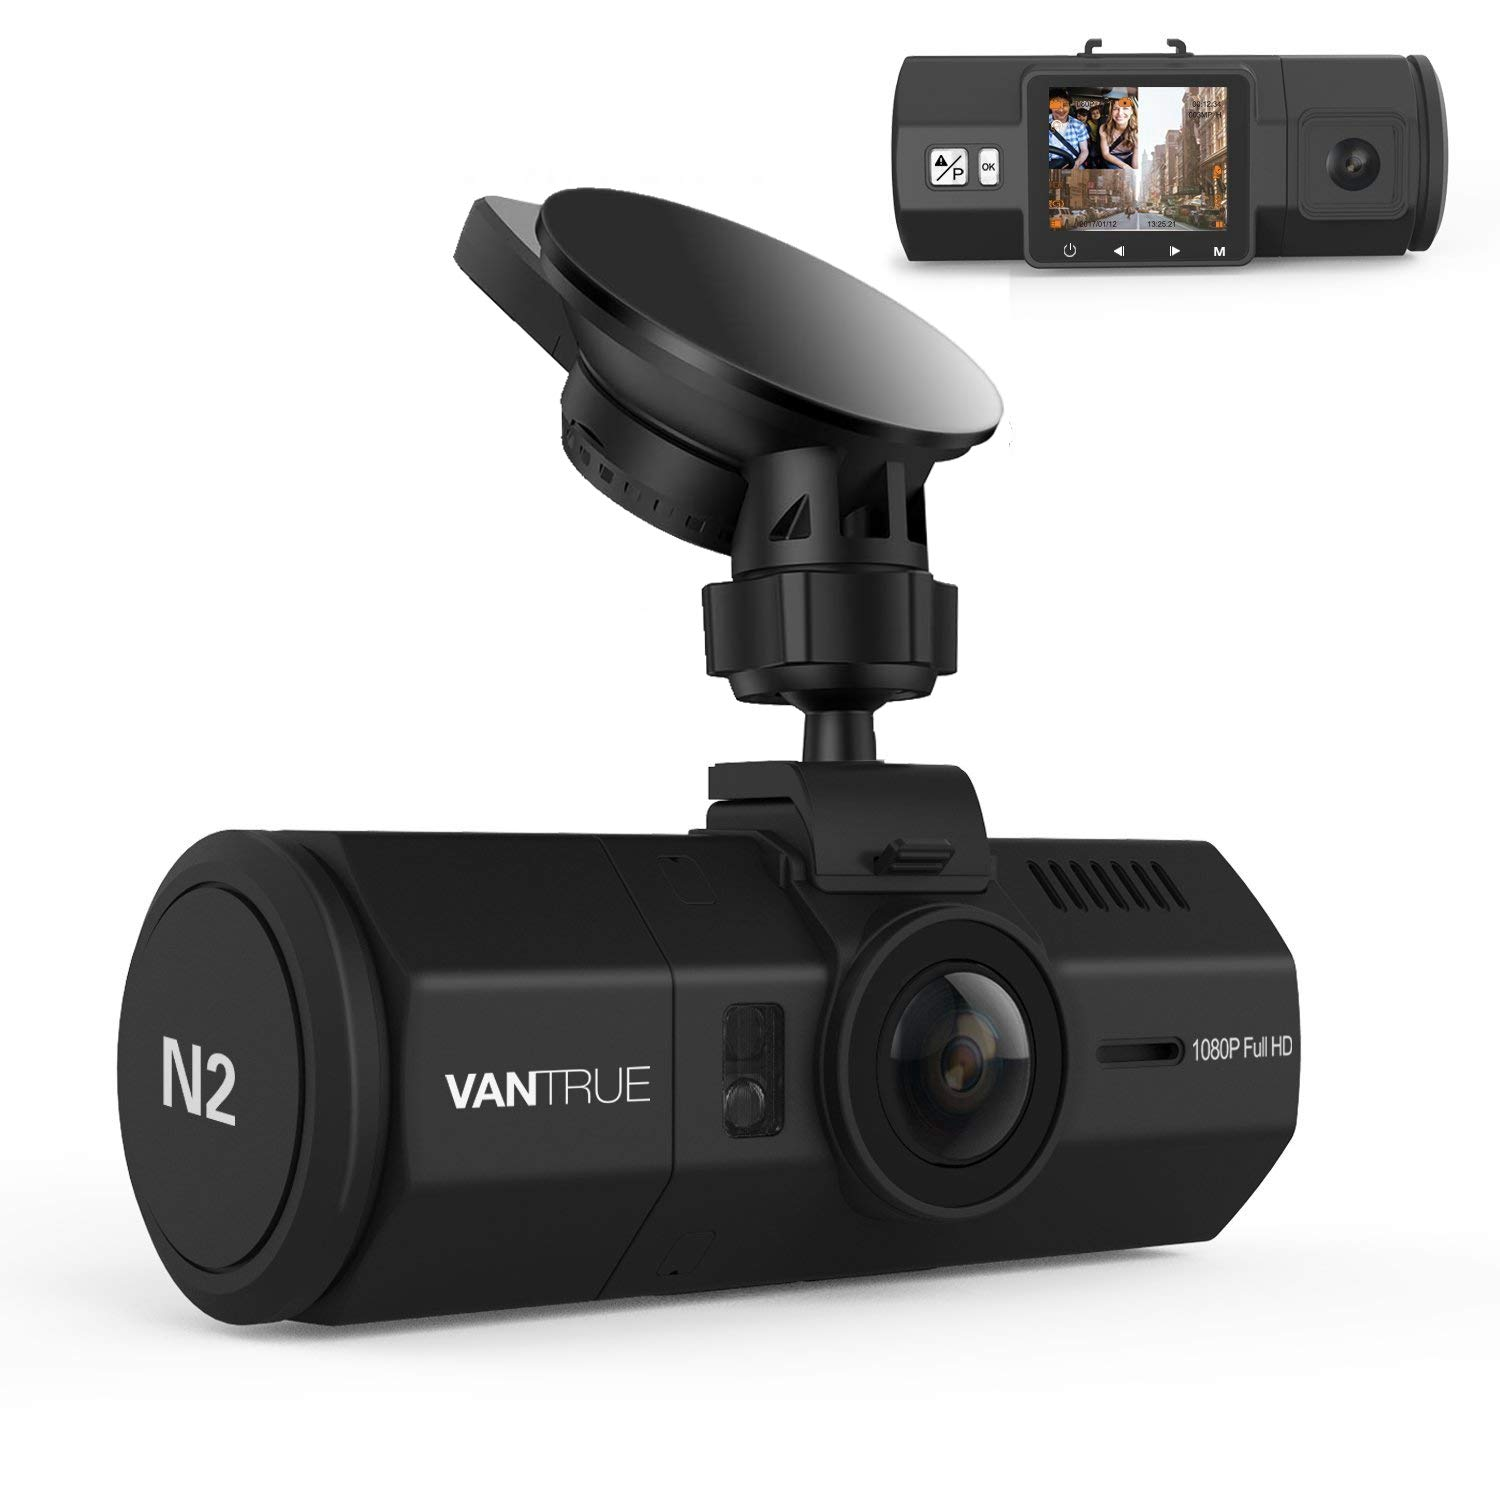 Vantrue N2 Uber Dual Dash Cam-1080P Inside and Outside Dash Camera for Cars 1.5'' Near 360° Wide Angle Lyft Dashboard Cam w/ Parking Mode, Motion Detection, Front Camera Night Vision Effects by VANTRUE